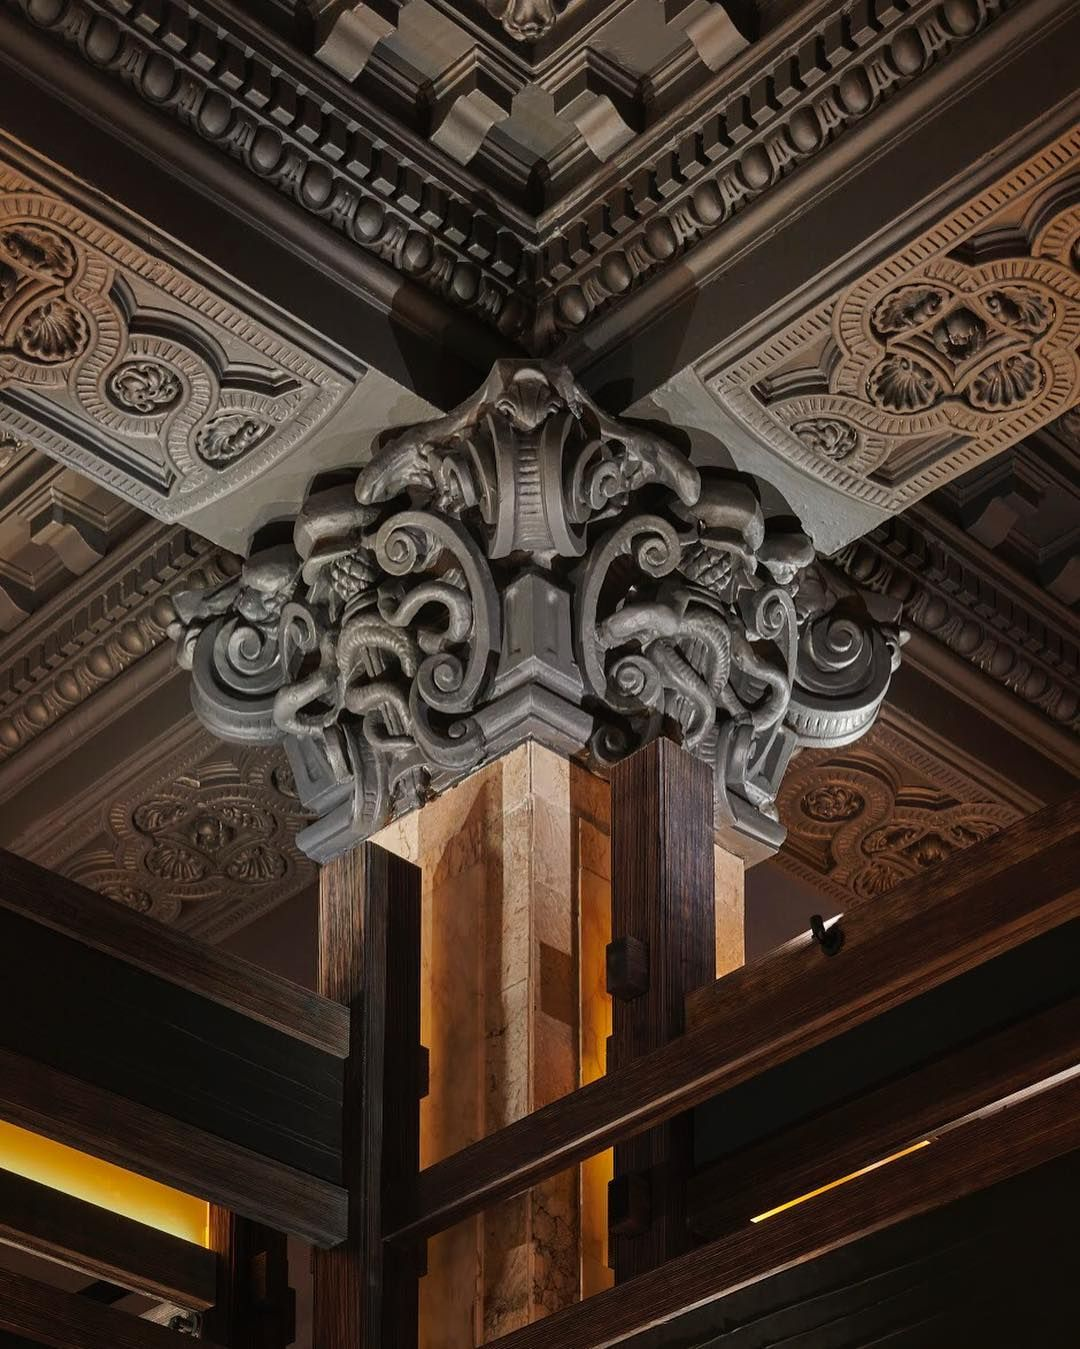 Imperial Treasure Uk On Instagram Experience Traditional Chinese Cuisine And Dim Sum While Soaking Up The Bar Design Awards Bar Design Restaurant Bar Design